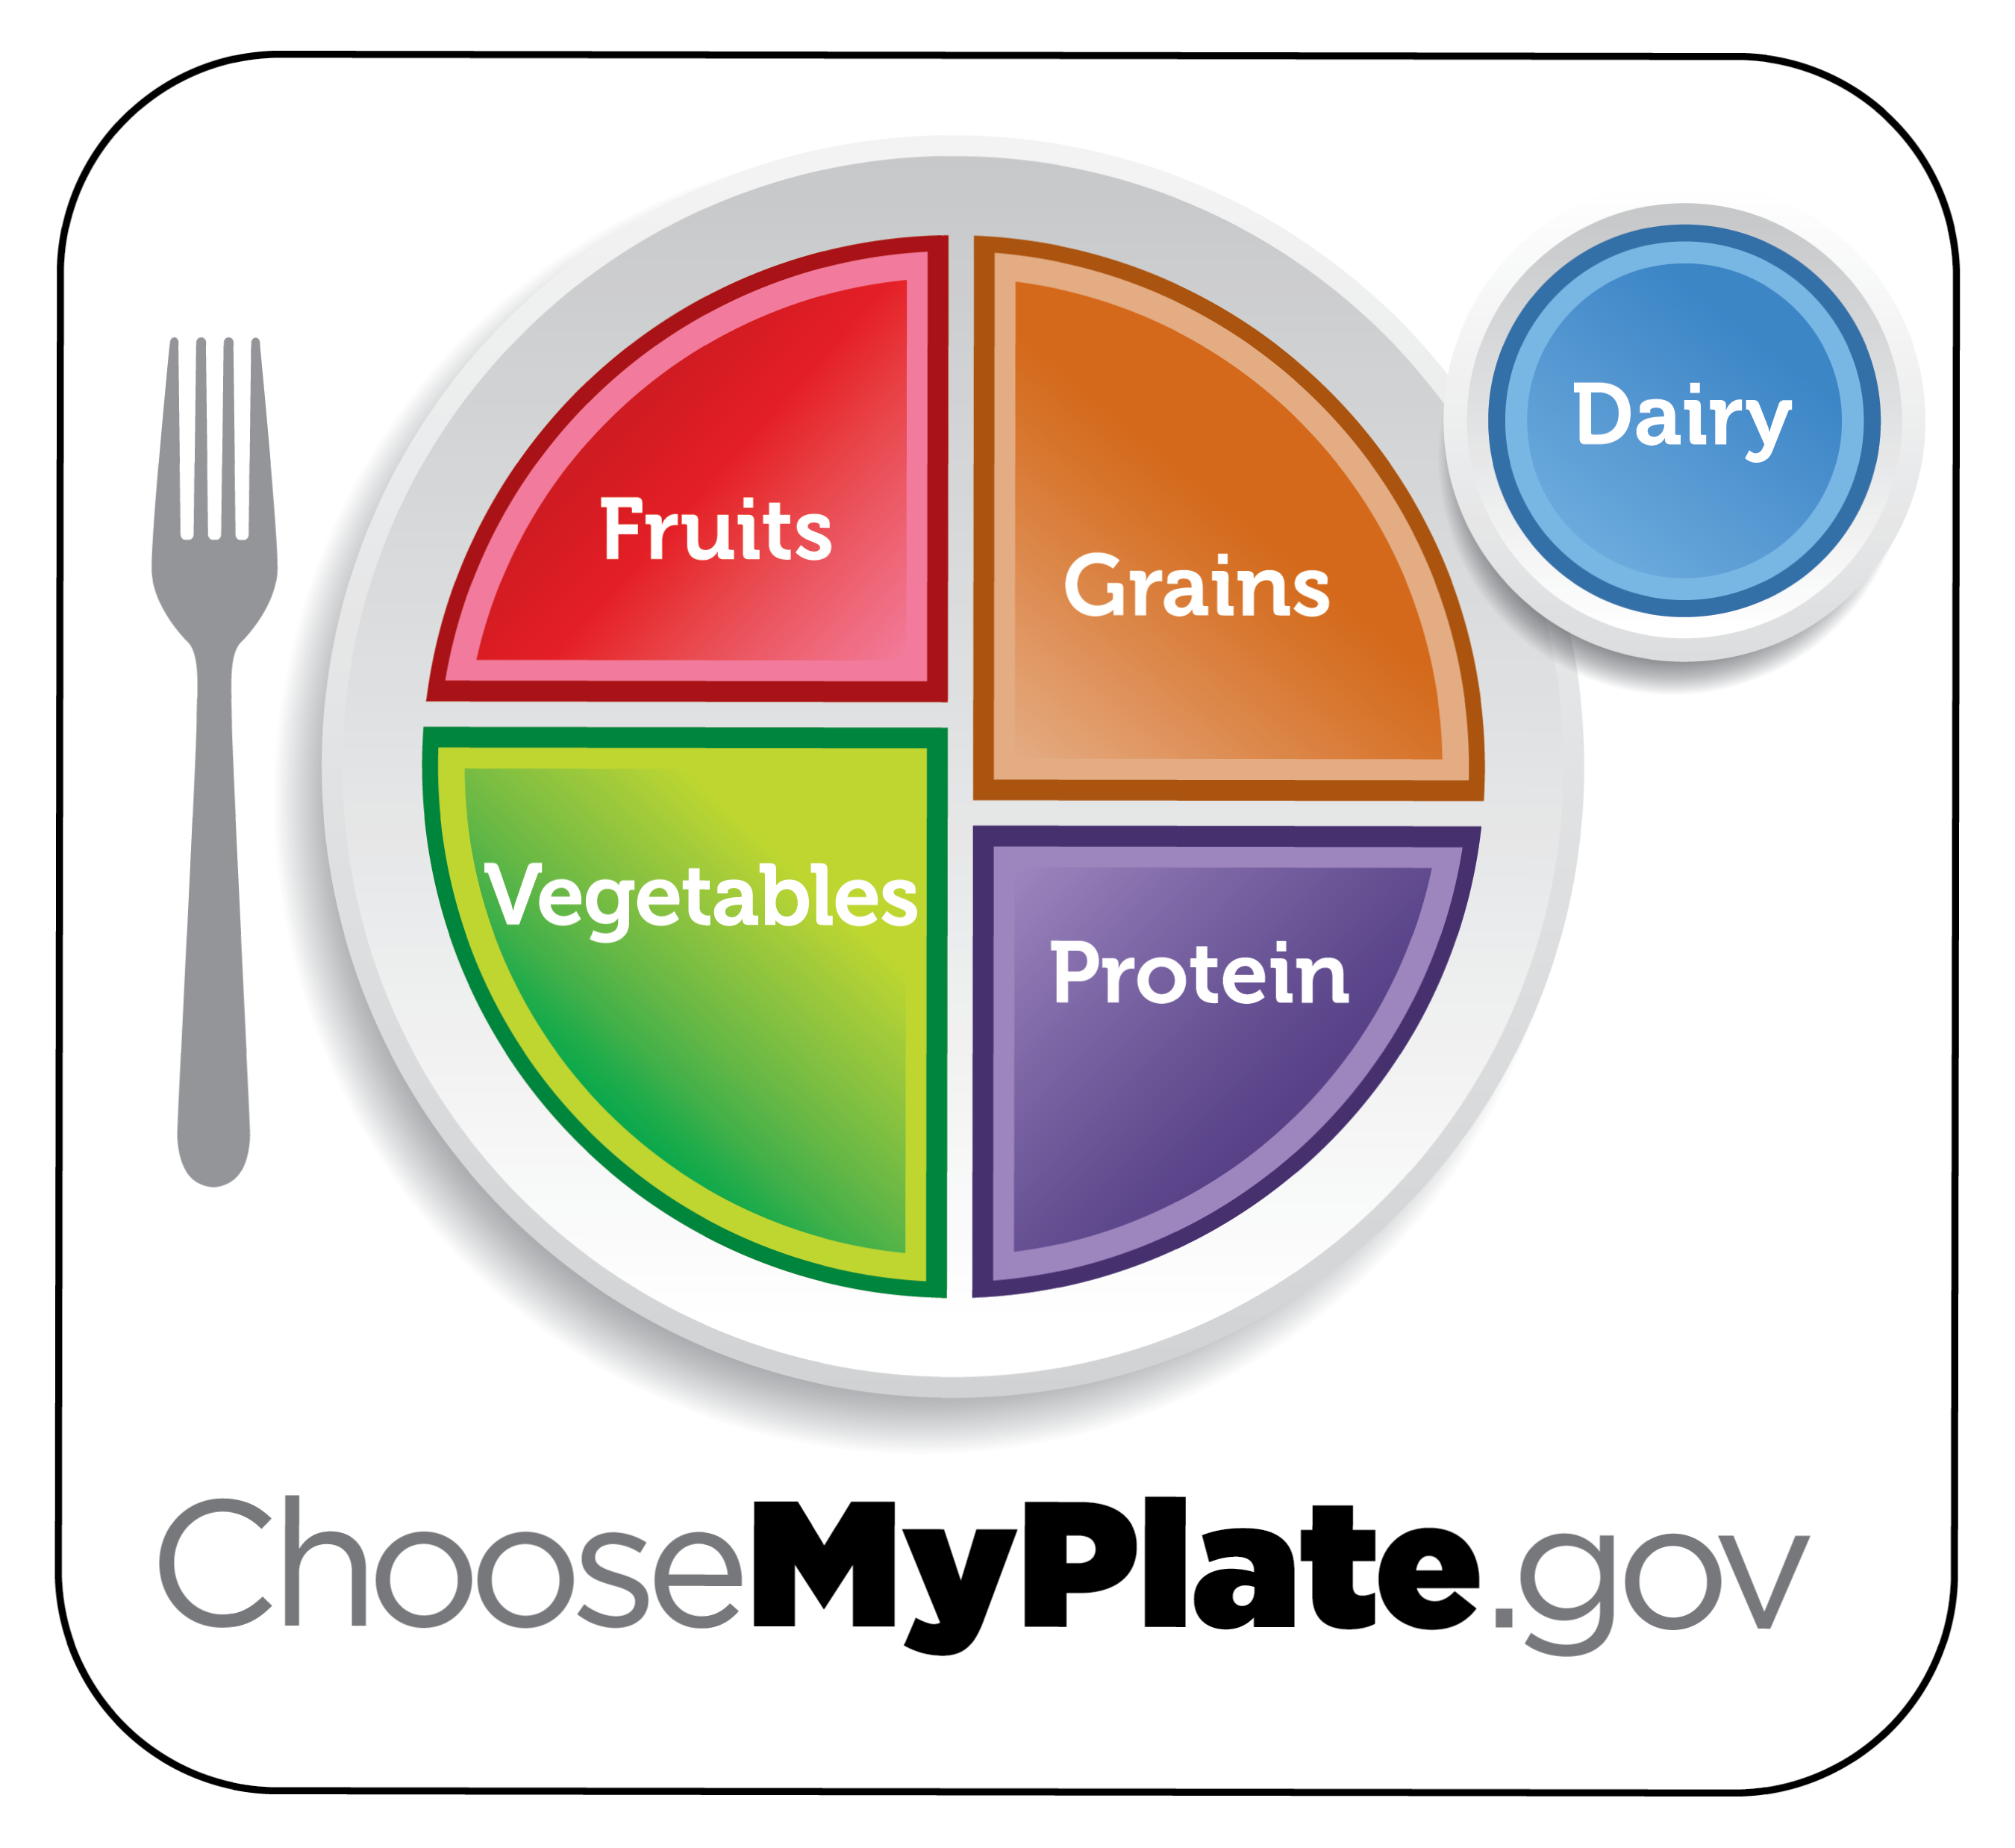 The USDA MyPlate infographic showing how much of one's plate each food group should take up.